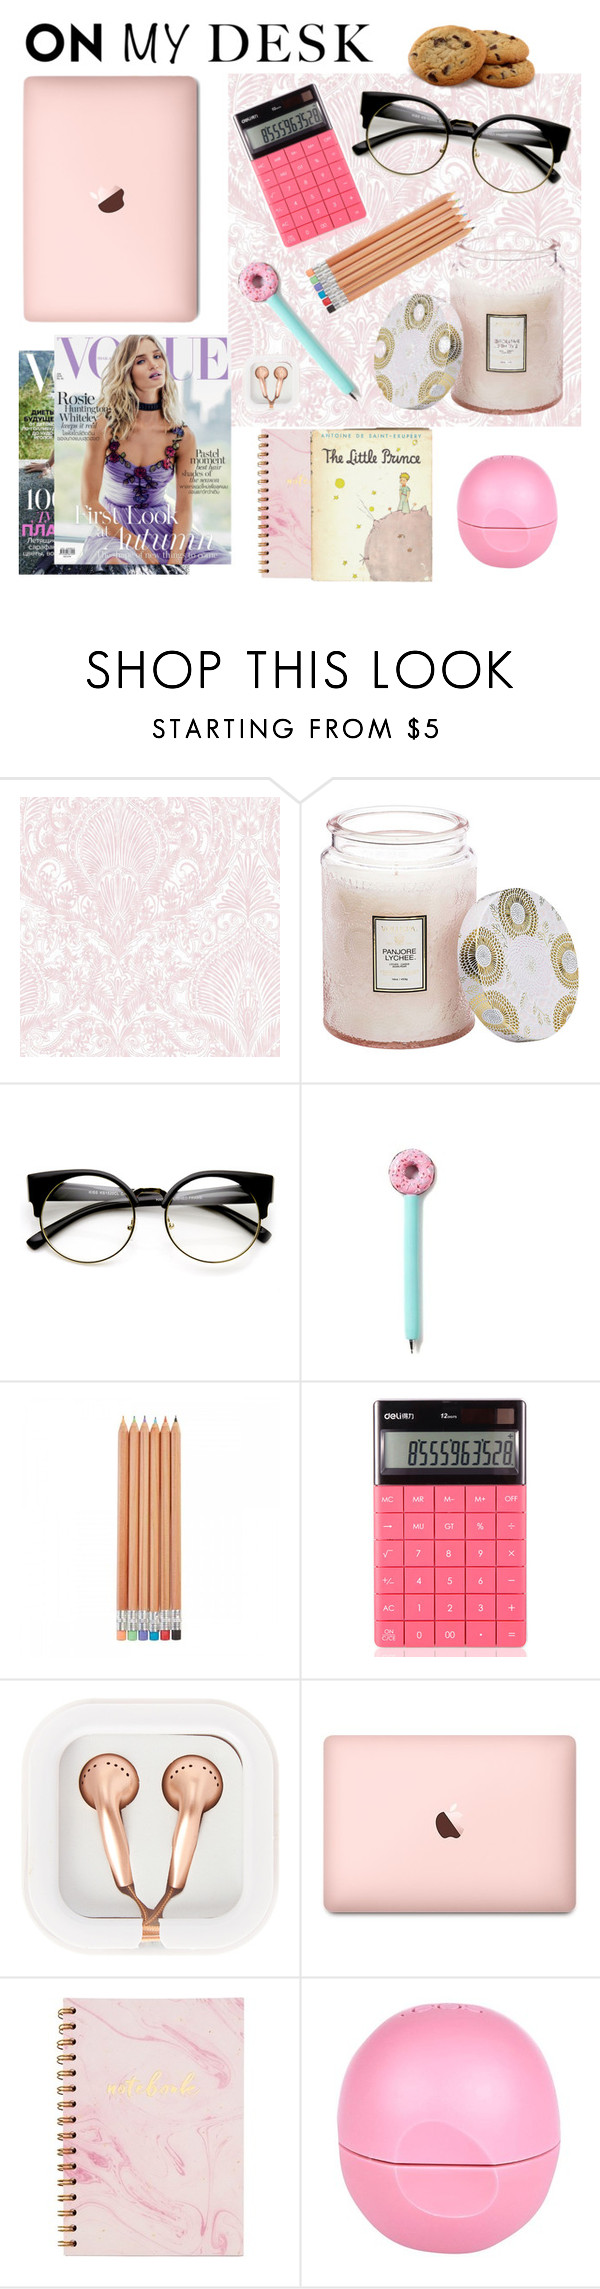 """On my desk"" by baimatovaaa ❤ liked on Polyvore featuring interior, interiors, interior design, home, home decor, interior decorating, Voluspa, ZeroUV, Whiteley and claire's"